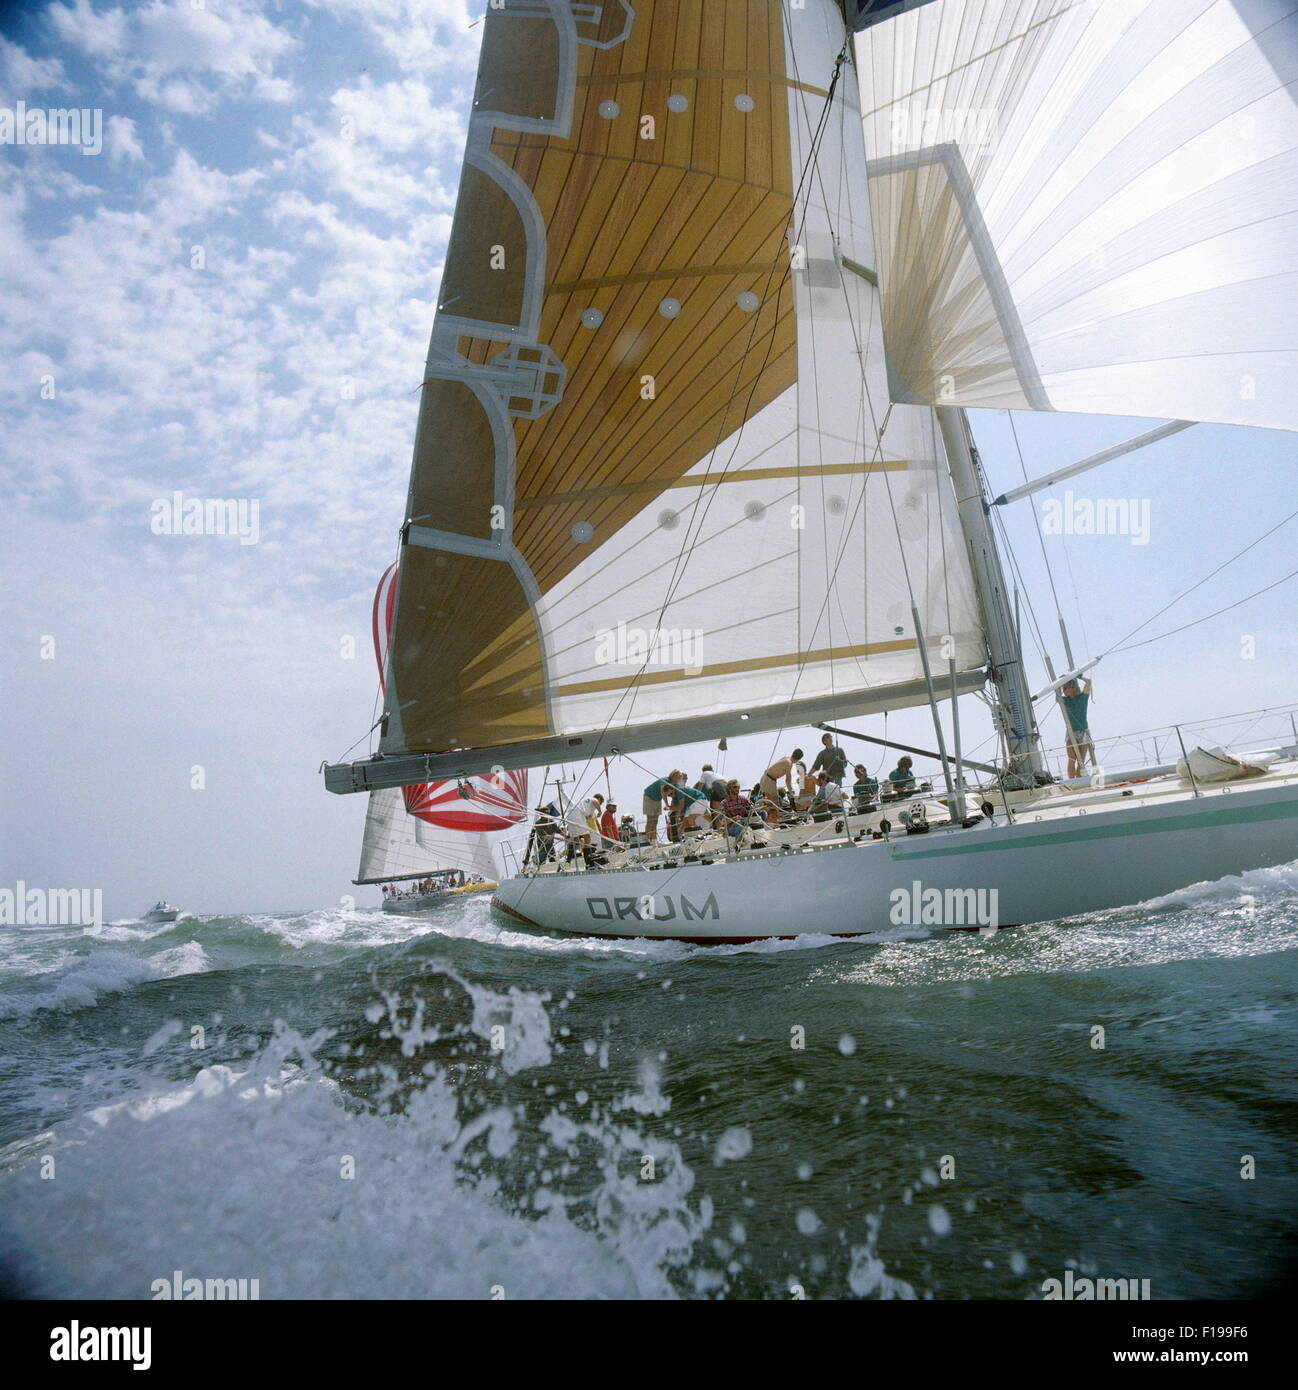 AJAXNETPHOTO. 1985. SOLENT, ENGLAND. - WHITBREAD ROUND THE WORLD RACE - SIMON LE BON'S DRUM. YACHT IS A WHITBREAD - Stock Image